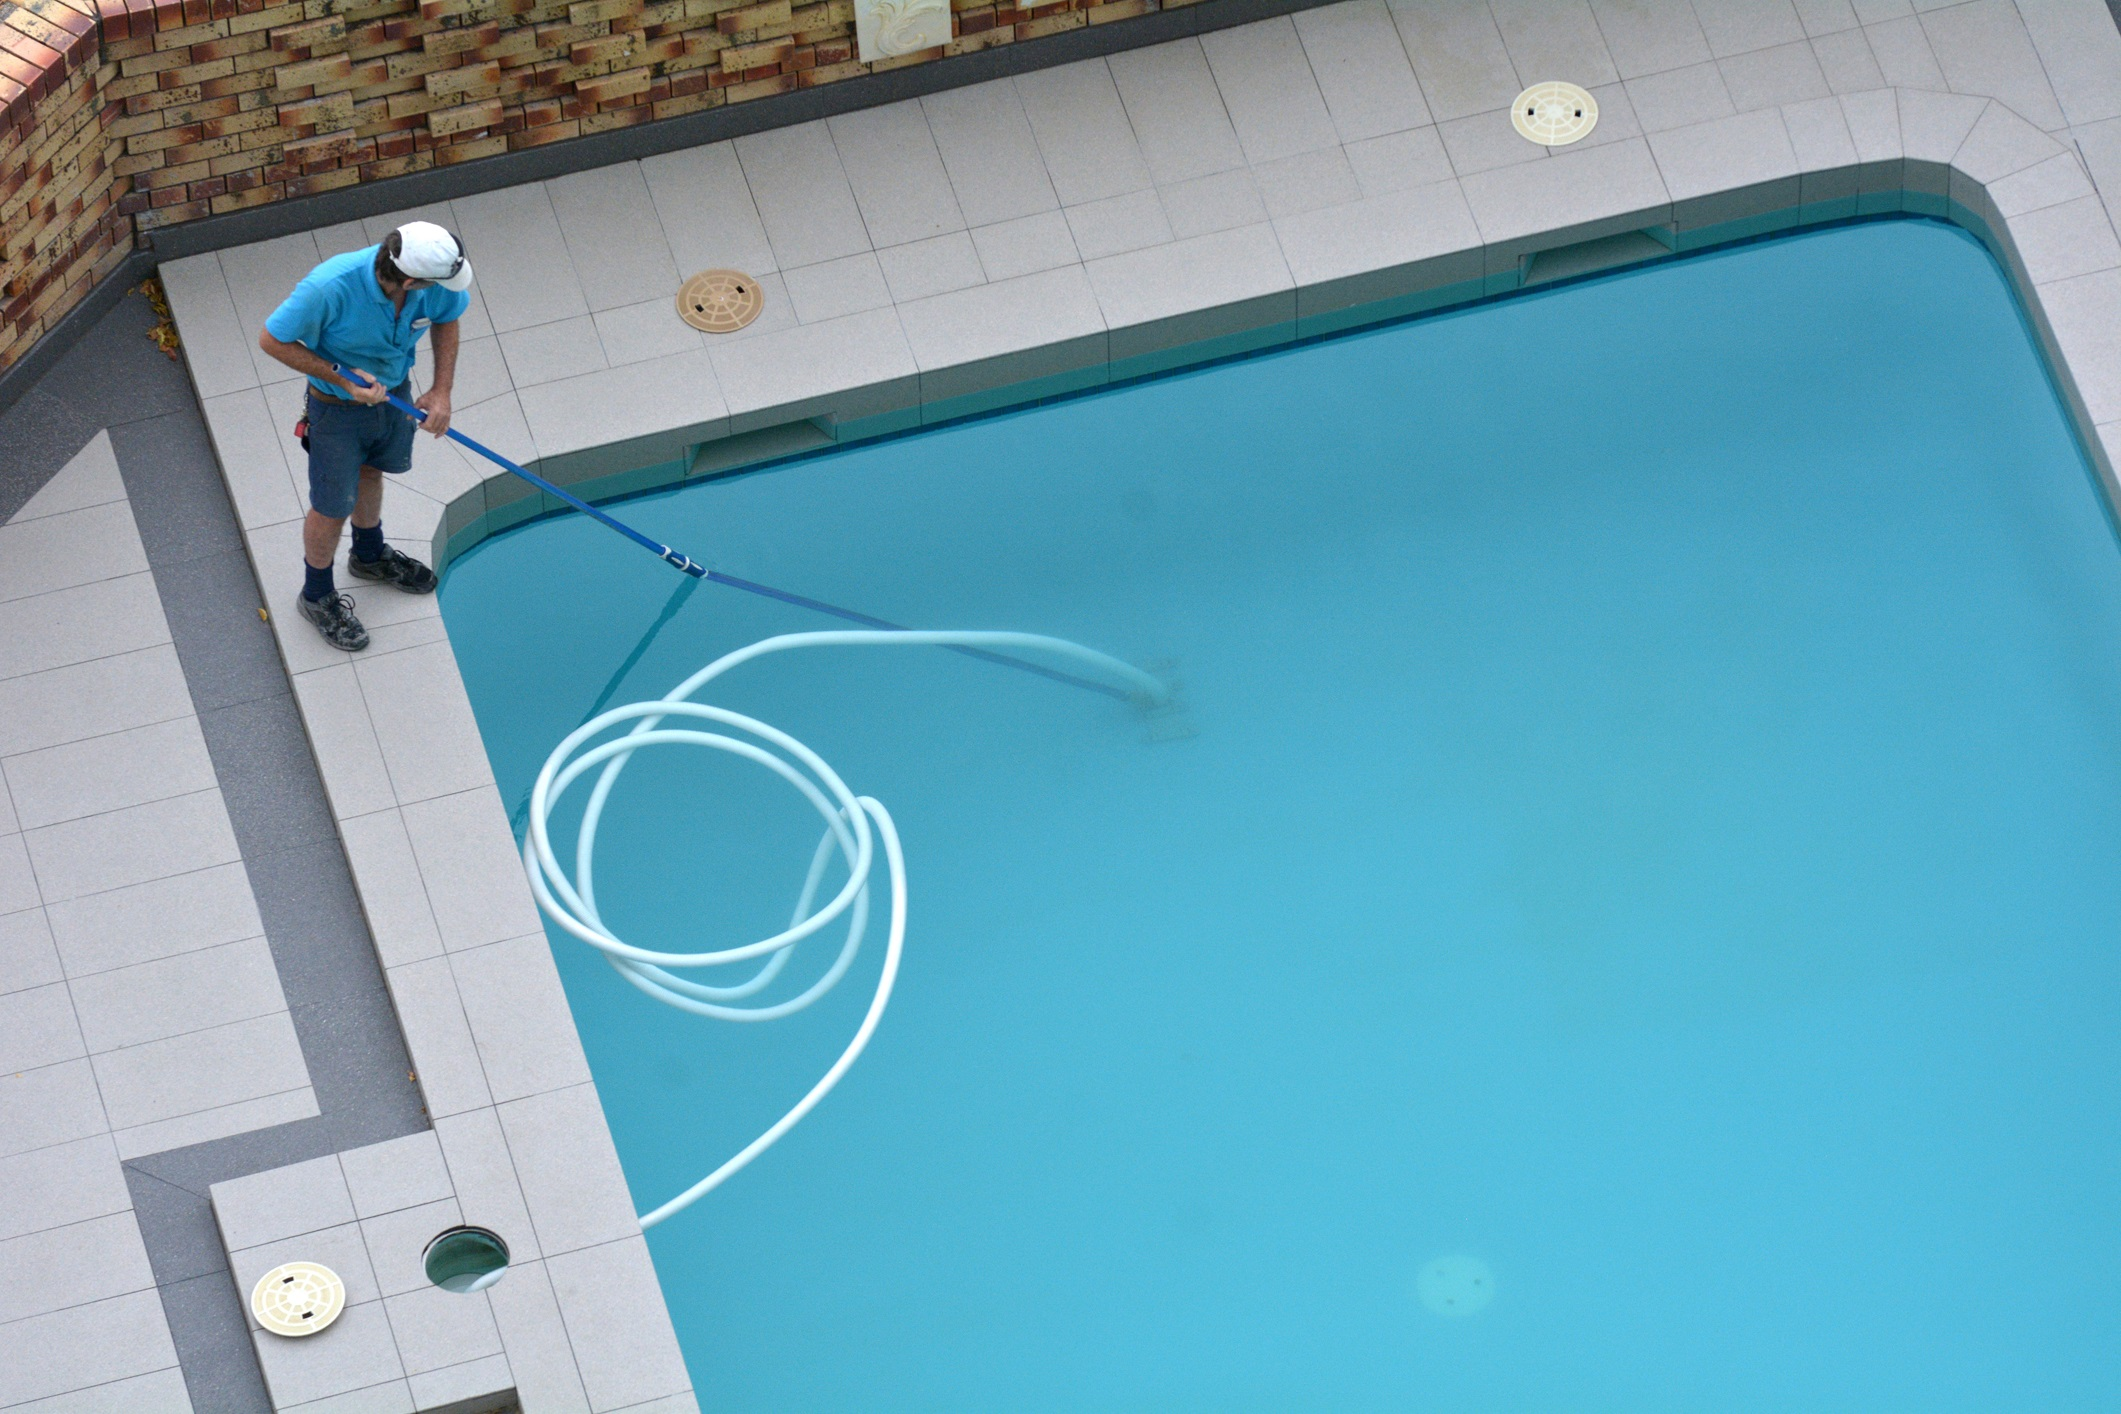 Pool Cleaner Cleaning a Pool by vacumming the floor